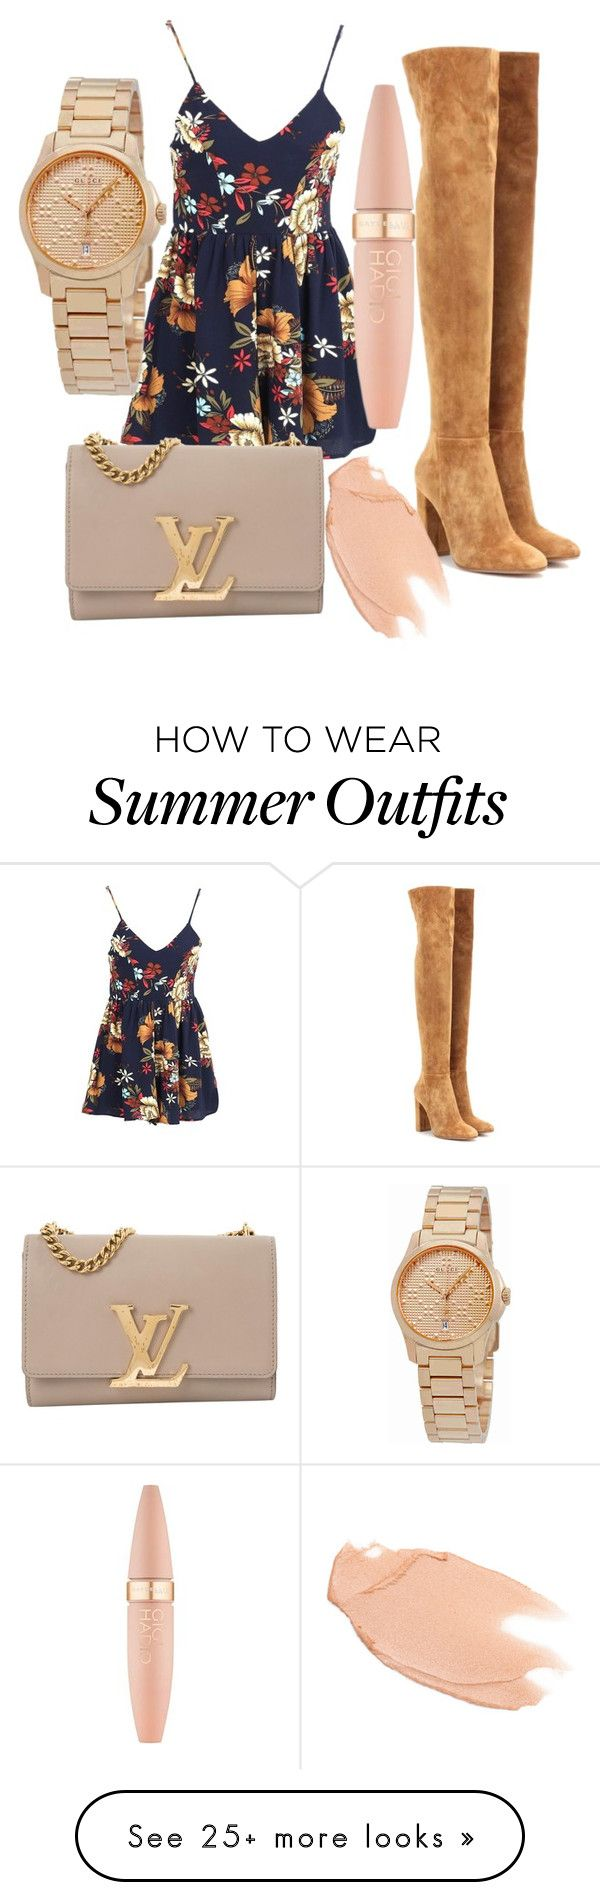 """weird outfit"" by teymac456 on Polyvore featuring Gianvito Rossi, Too Faced Cosmetics, Louis Vuitton, Maybelline and Gucci"